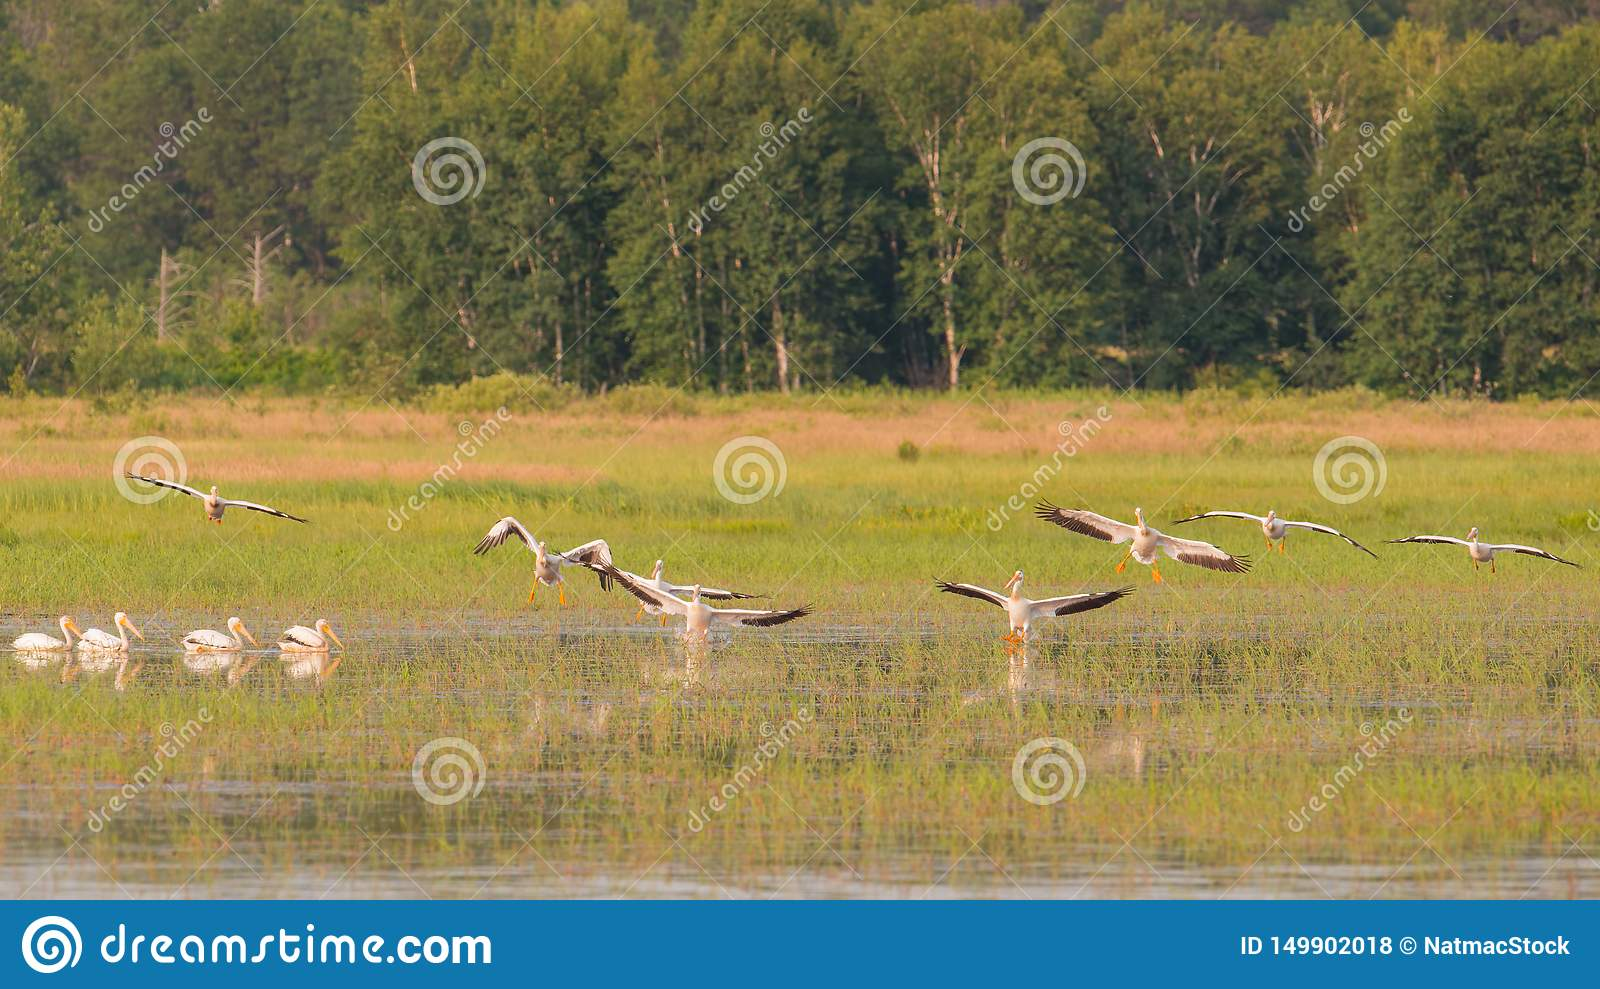 Squadron of American white pelicans flying during the summer in the Crex Meadows Wildlife Area - mainly wetlands area